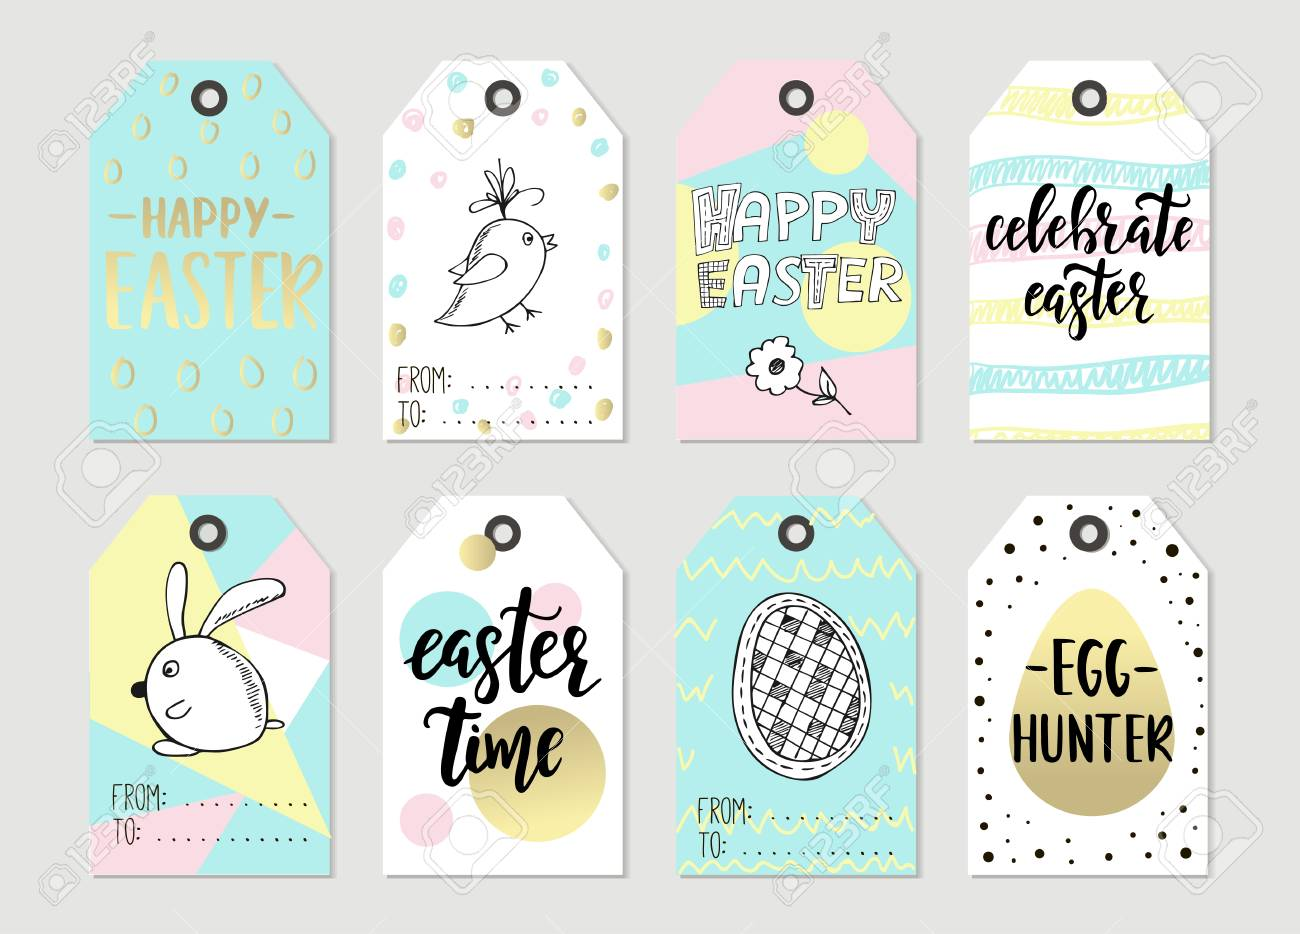 photo regarding Printable Easter Gift Tags called Preset with Joyful Easter reward tags and playing cards with calligraphy. Handwritten..